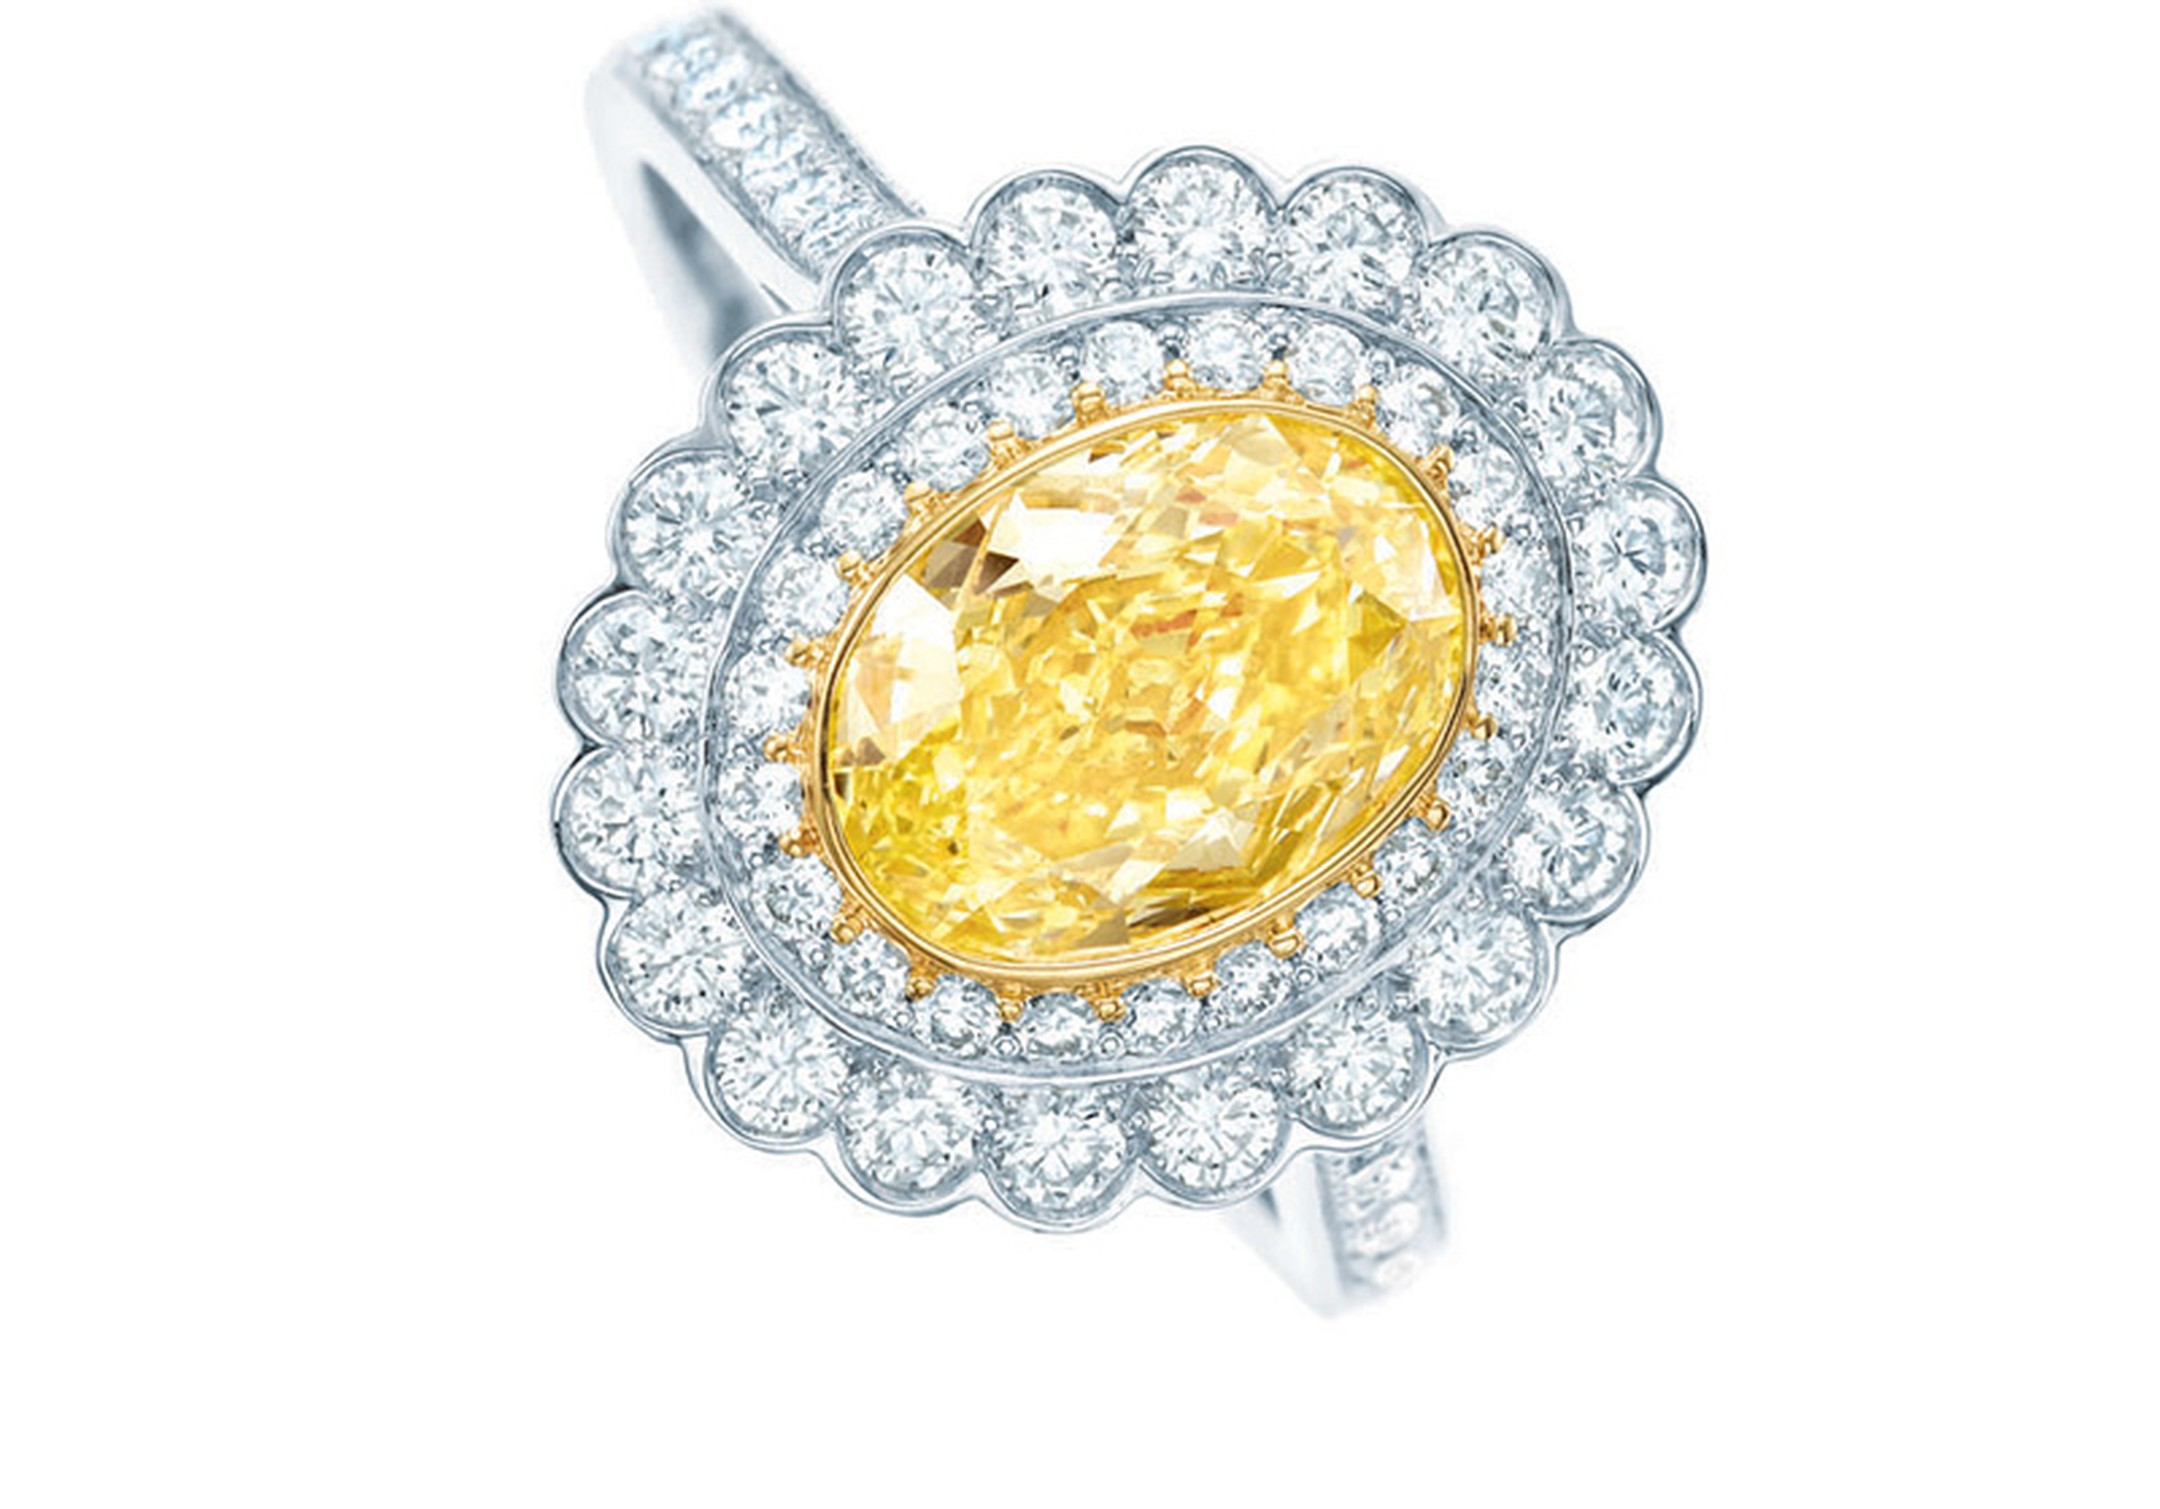 Tiffany-Enchant-yellow-and-white-diamond-rings-set-in-platinum2.jpg